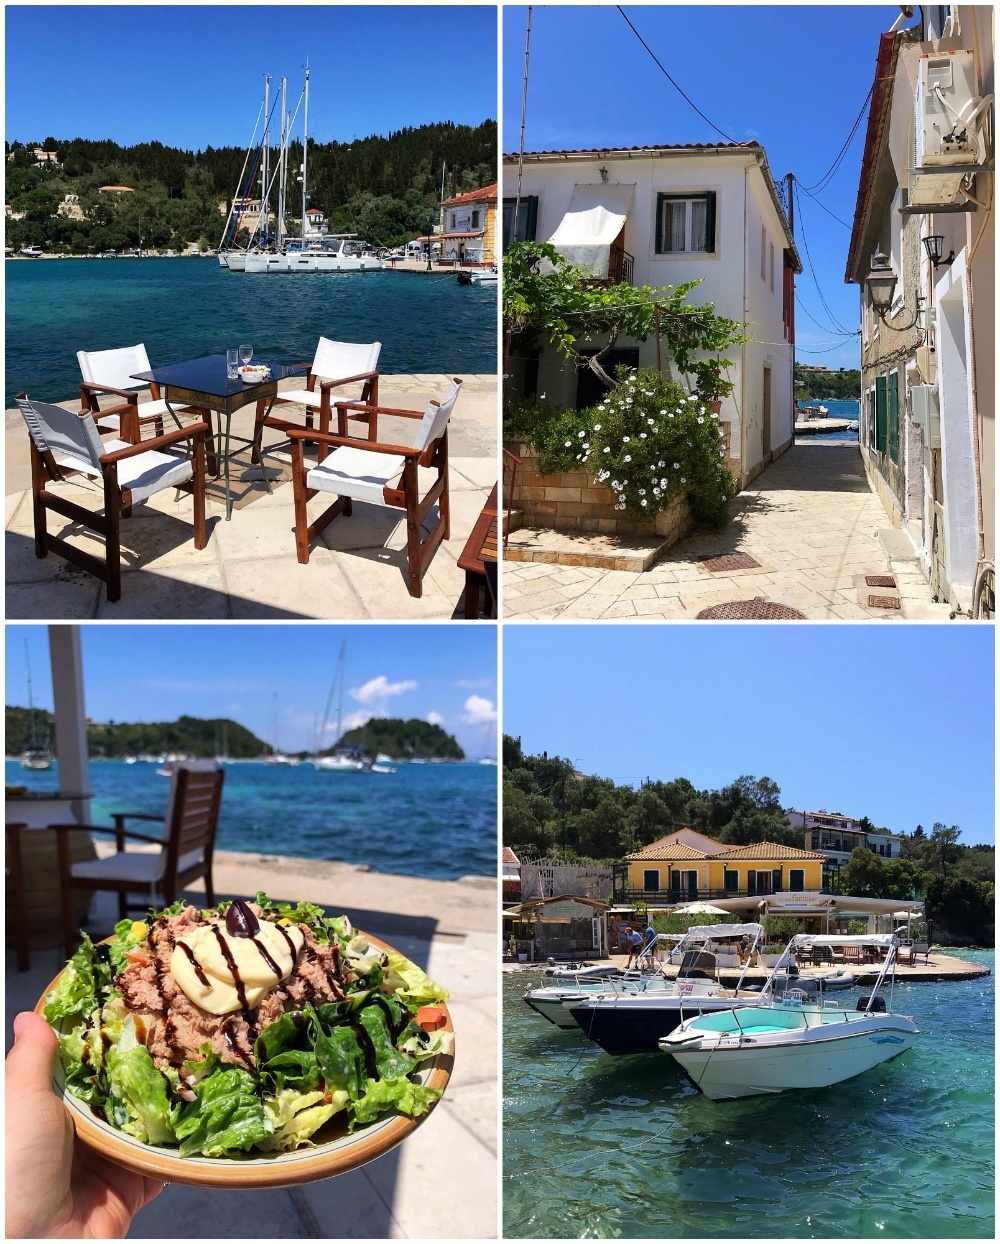 Fanis Bar in Lakka harbour, Paxos Greece Photo Heatheronhertravels.com